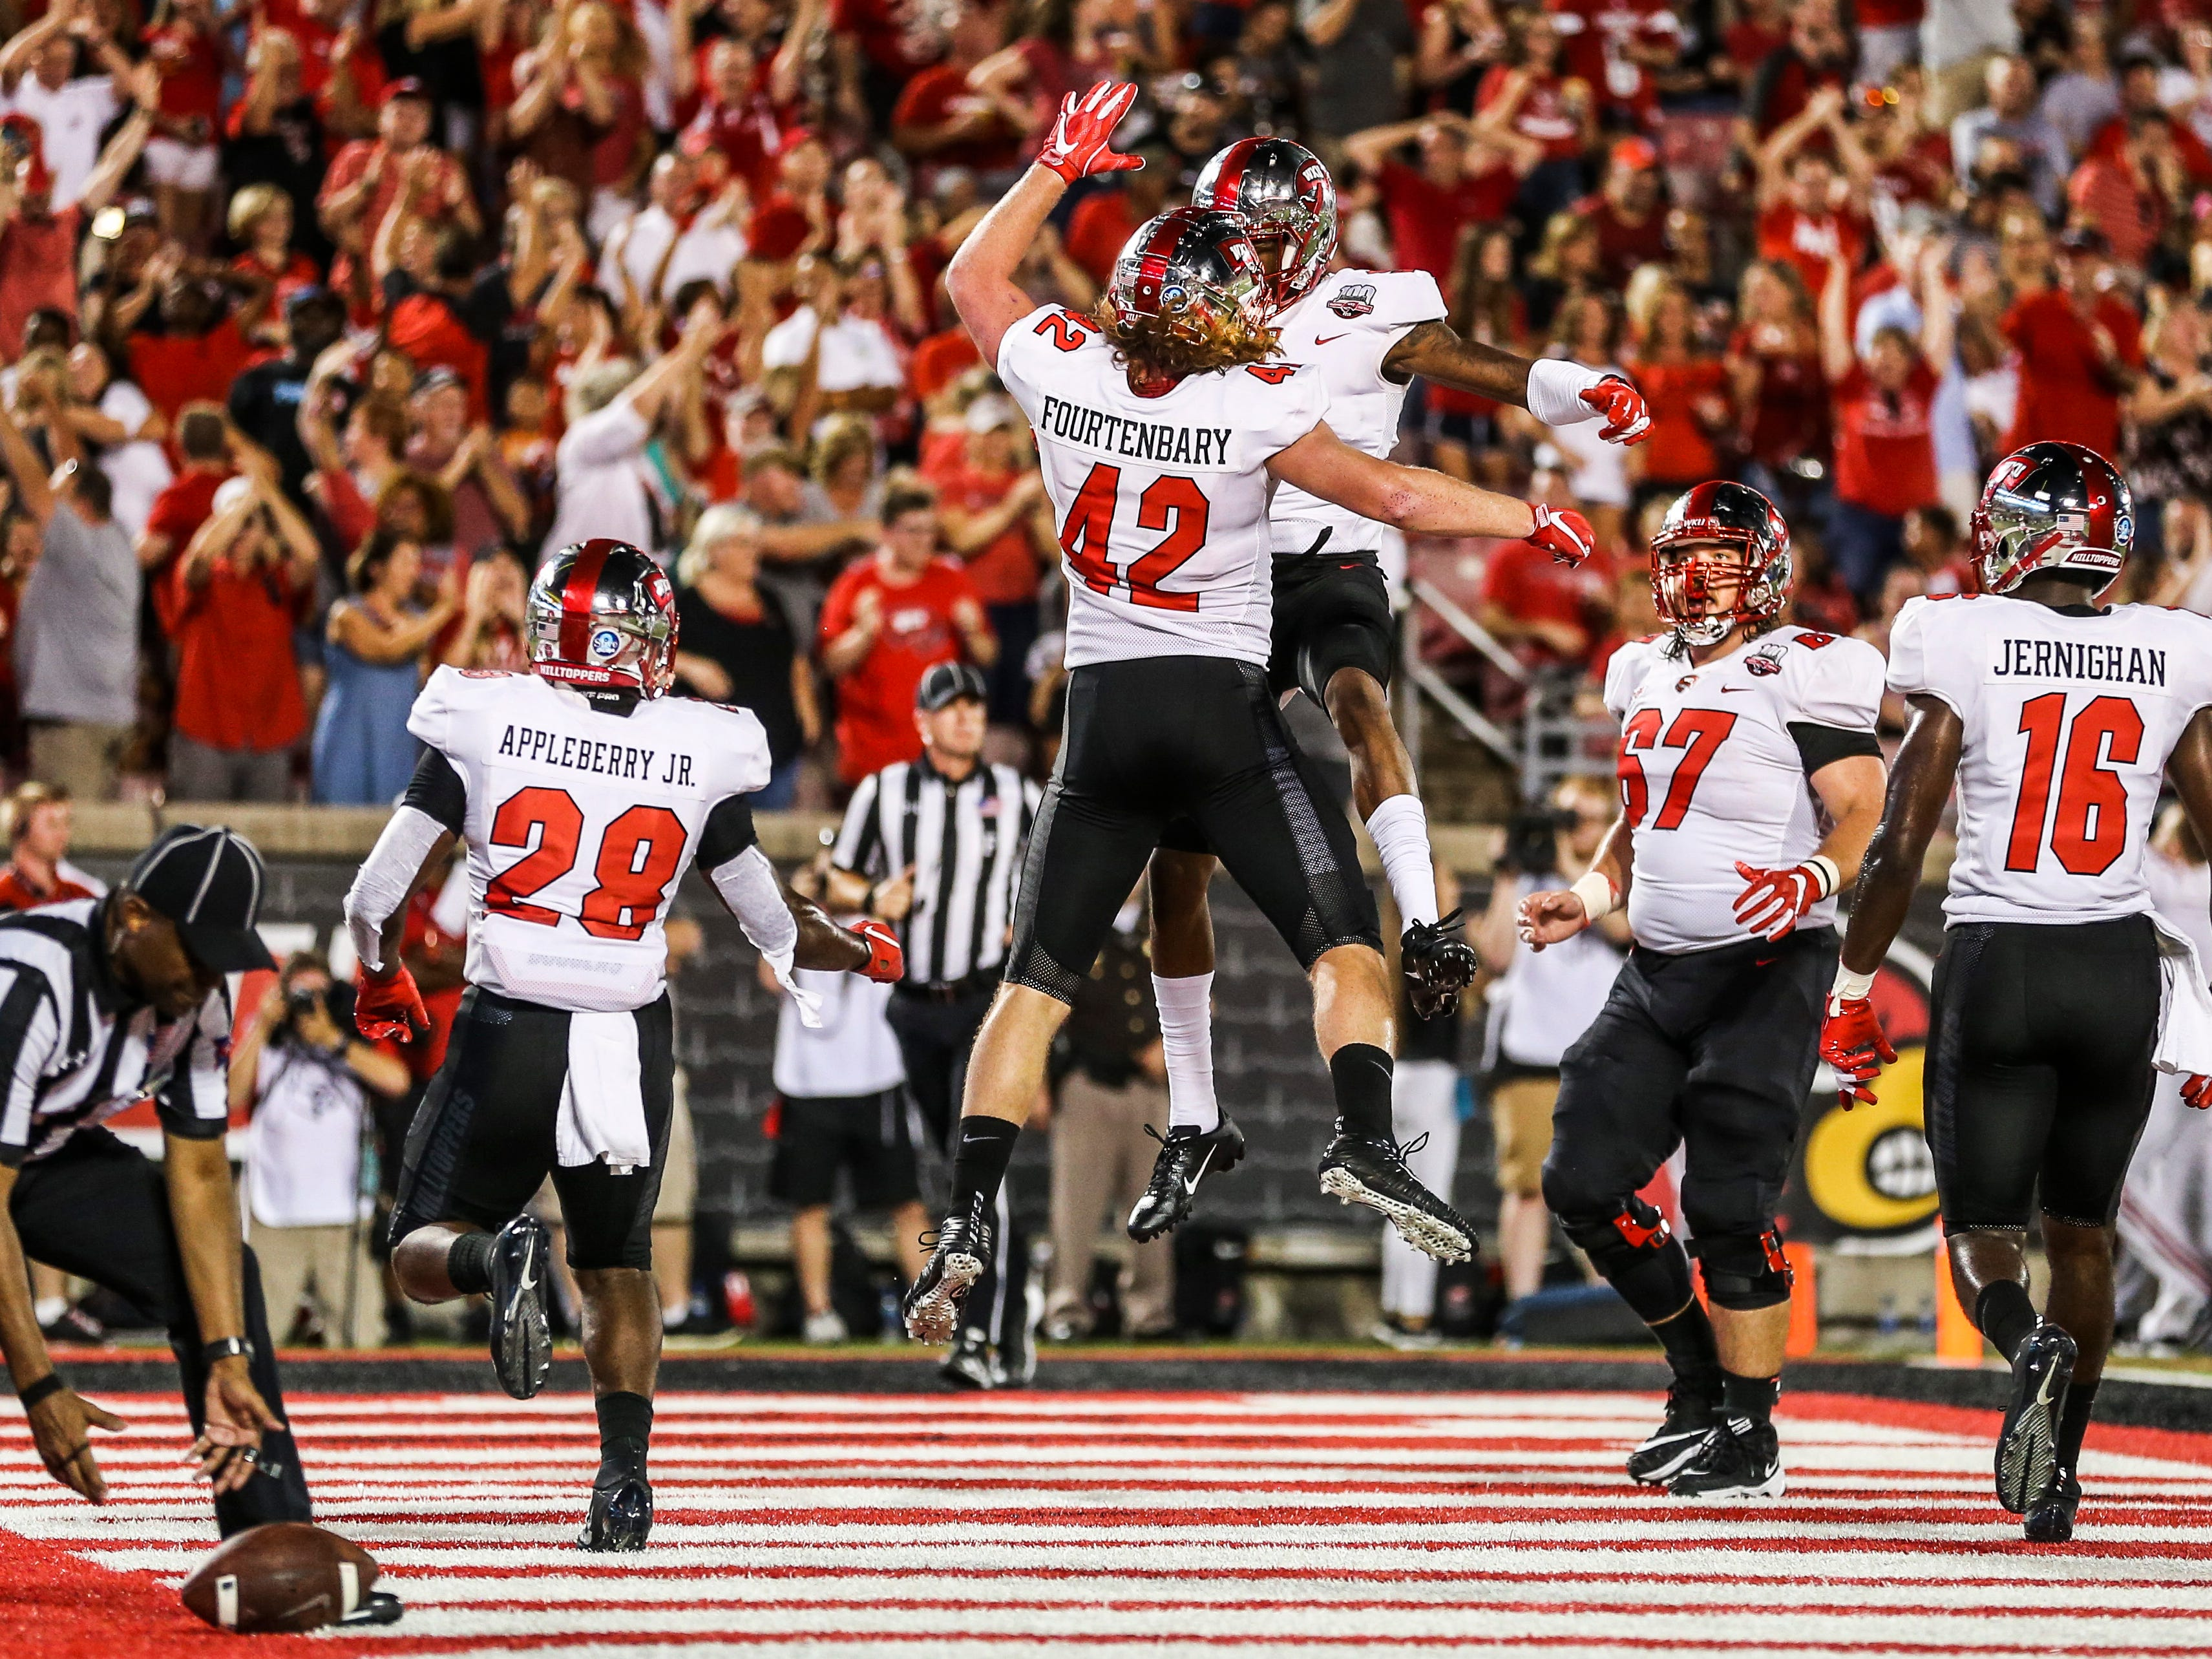 Western Kentucky's Kyle Fourtenbary celebrates his rushing touchdown with his teammates after scoring against Louisville to put the Toppers up 7-0 in the first half Saturday, Sept. 15, 2018.